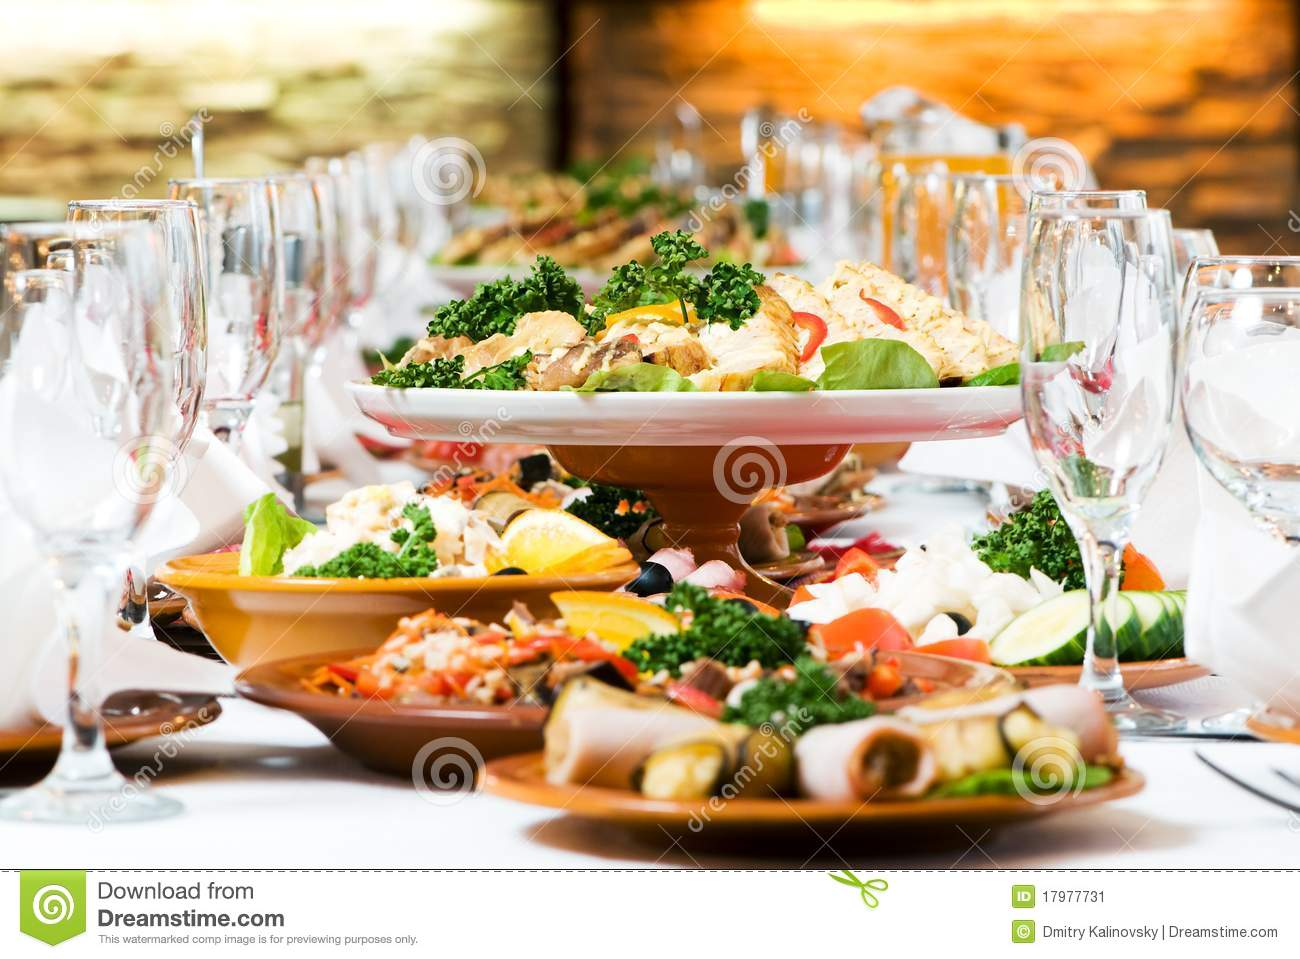 catering food table set decoration stock image image 17977731. Black Bedroom Furniture Sets. Home Design Ideas